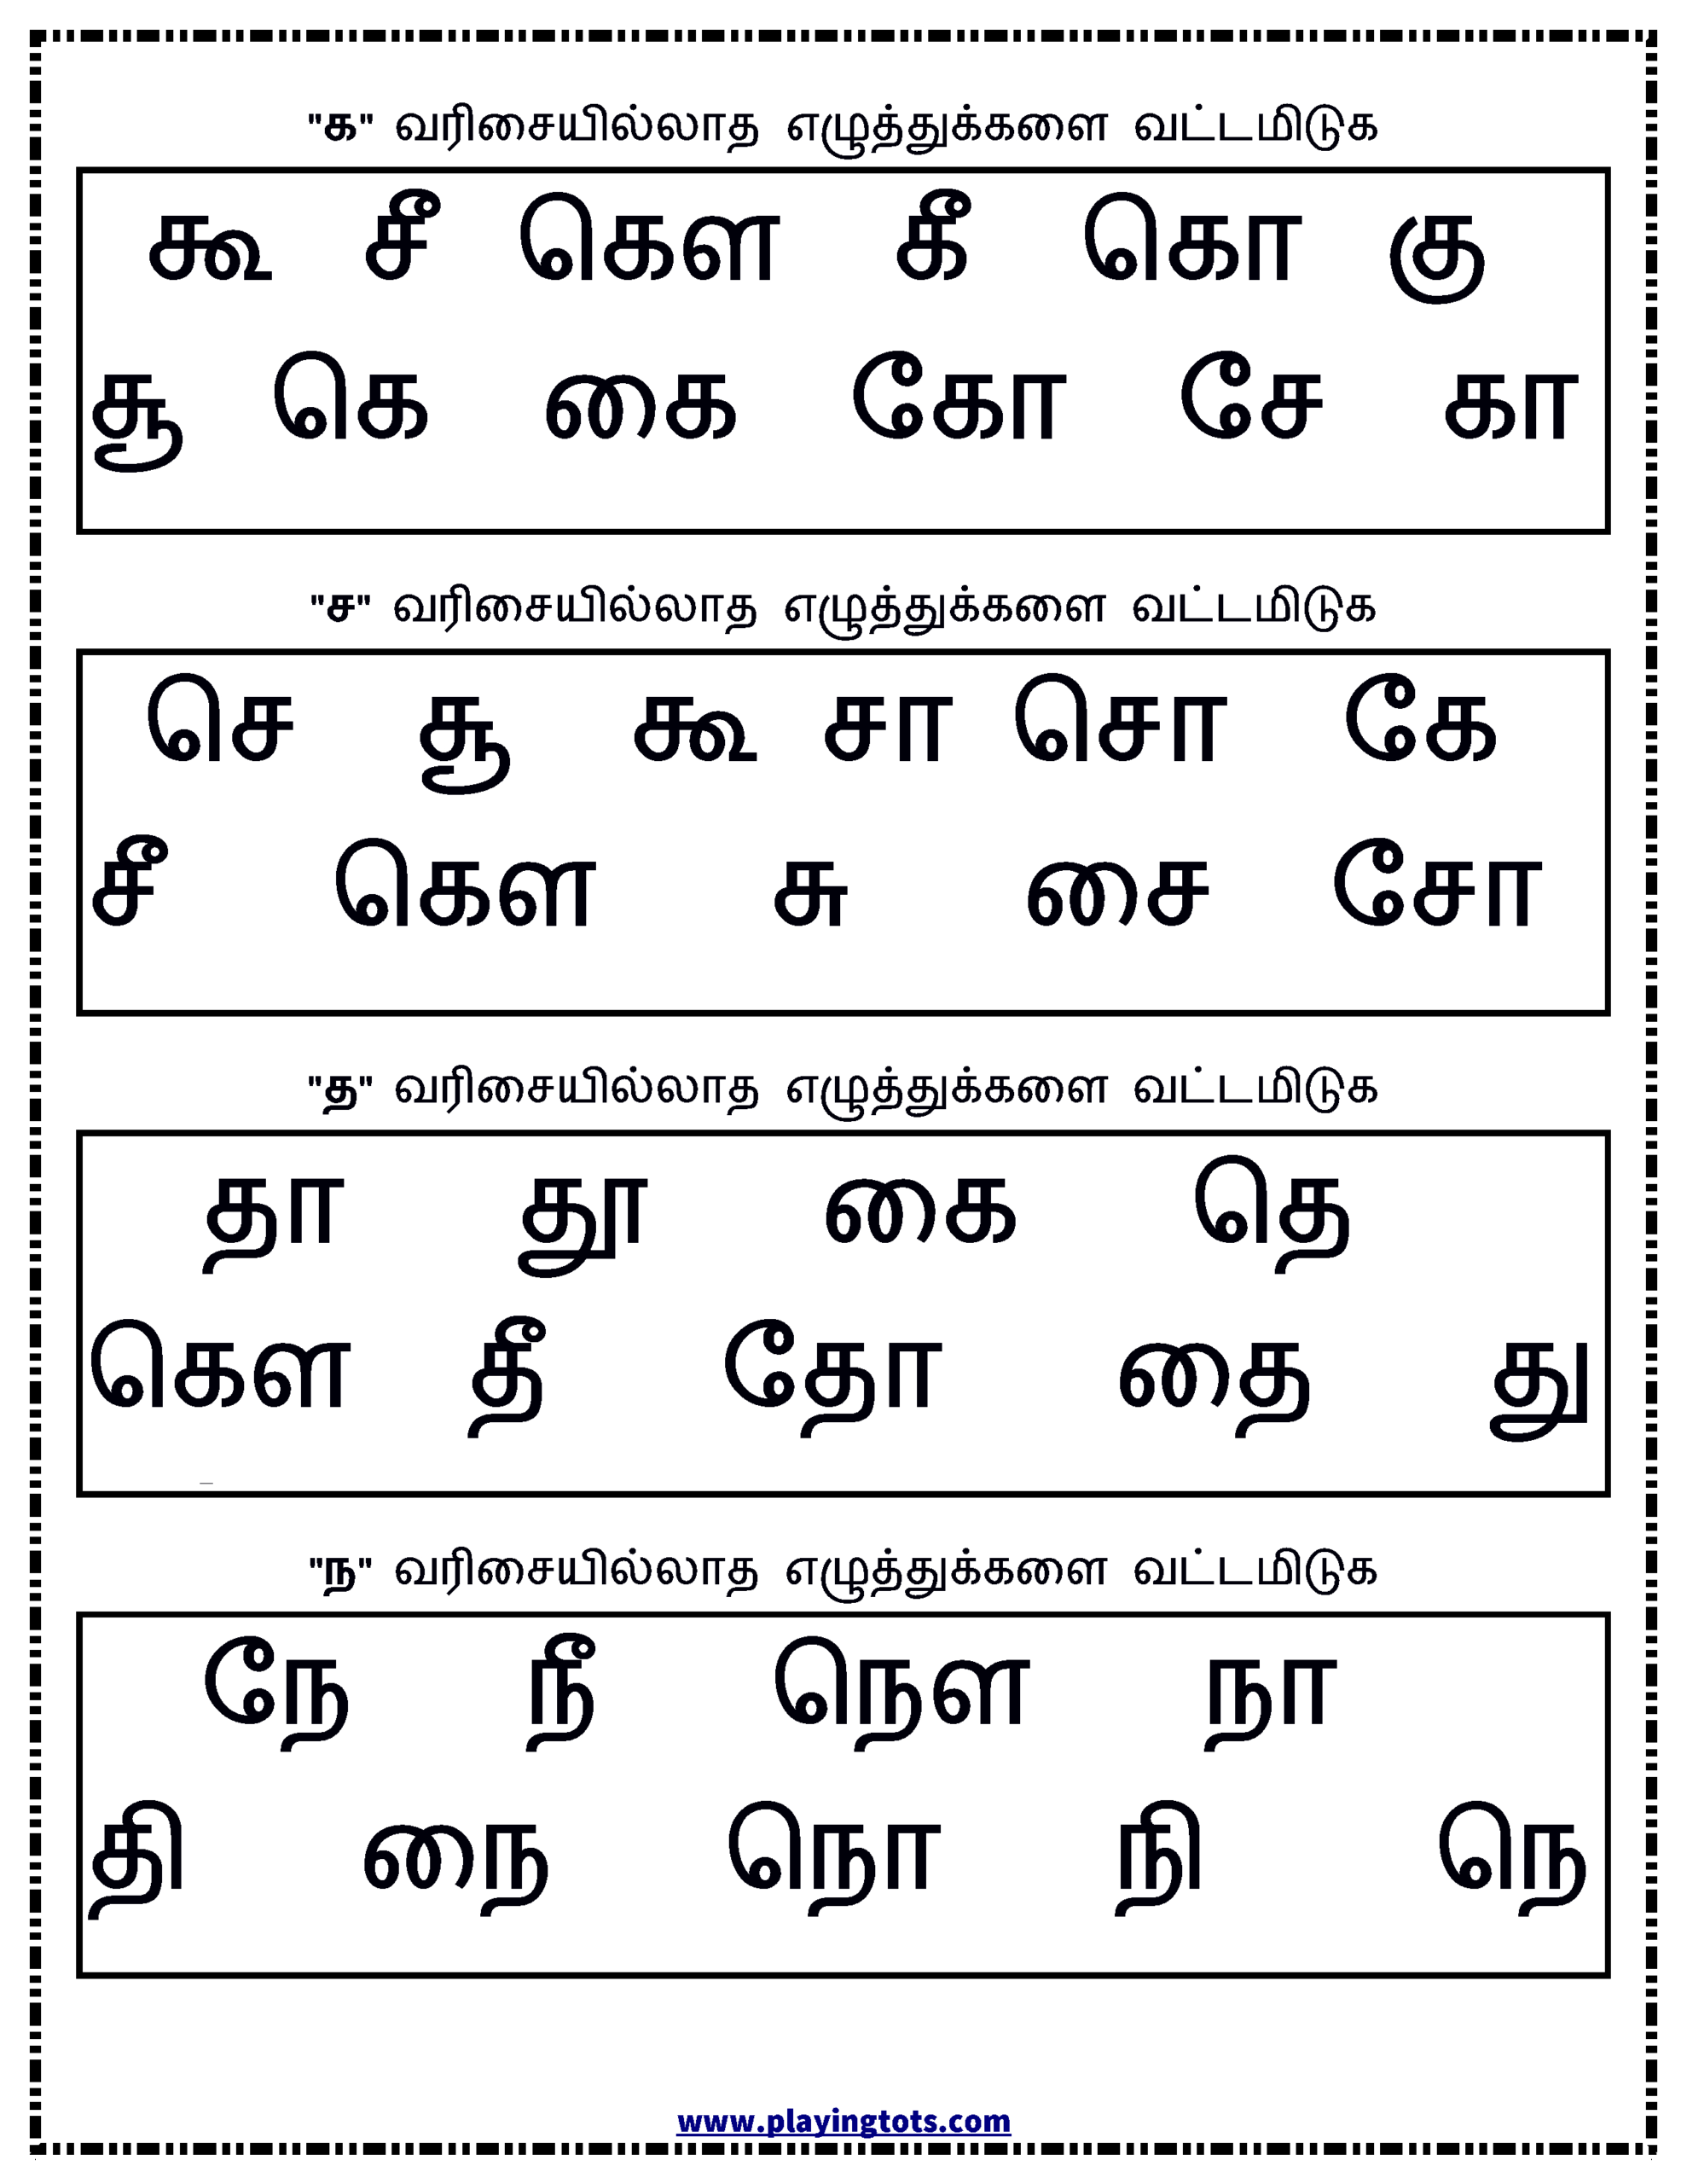 Worksheets - Tamil Letters - Odd One Out in Alphabet Worksheets For Ukg